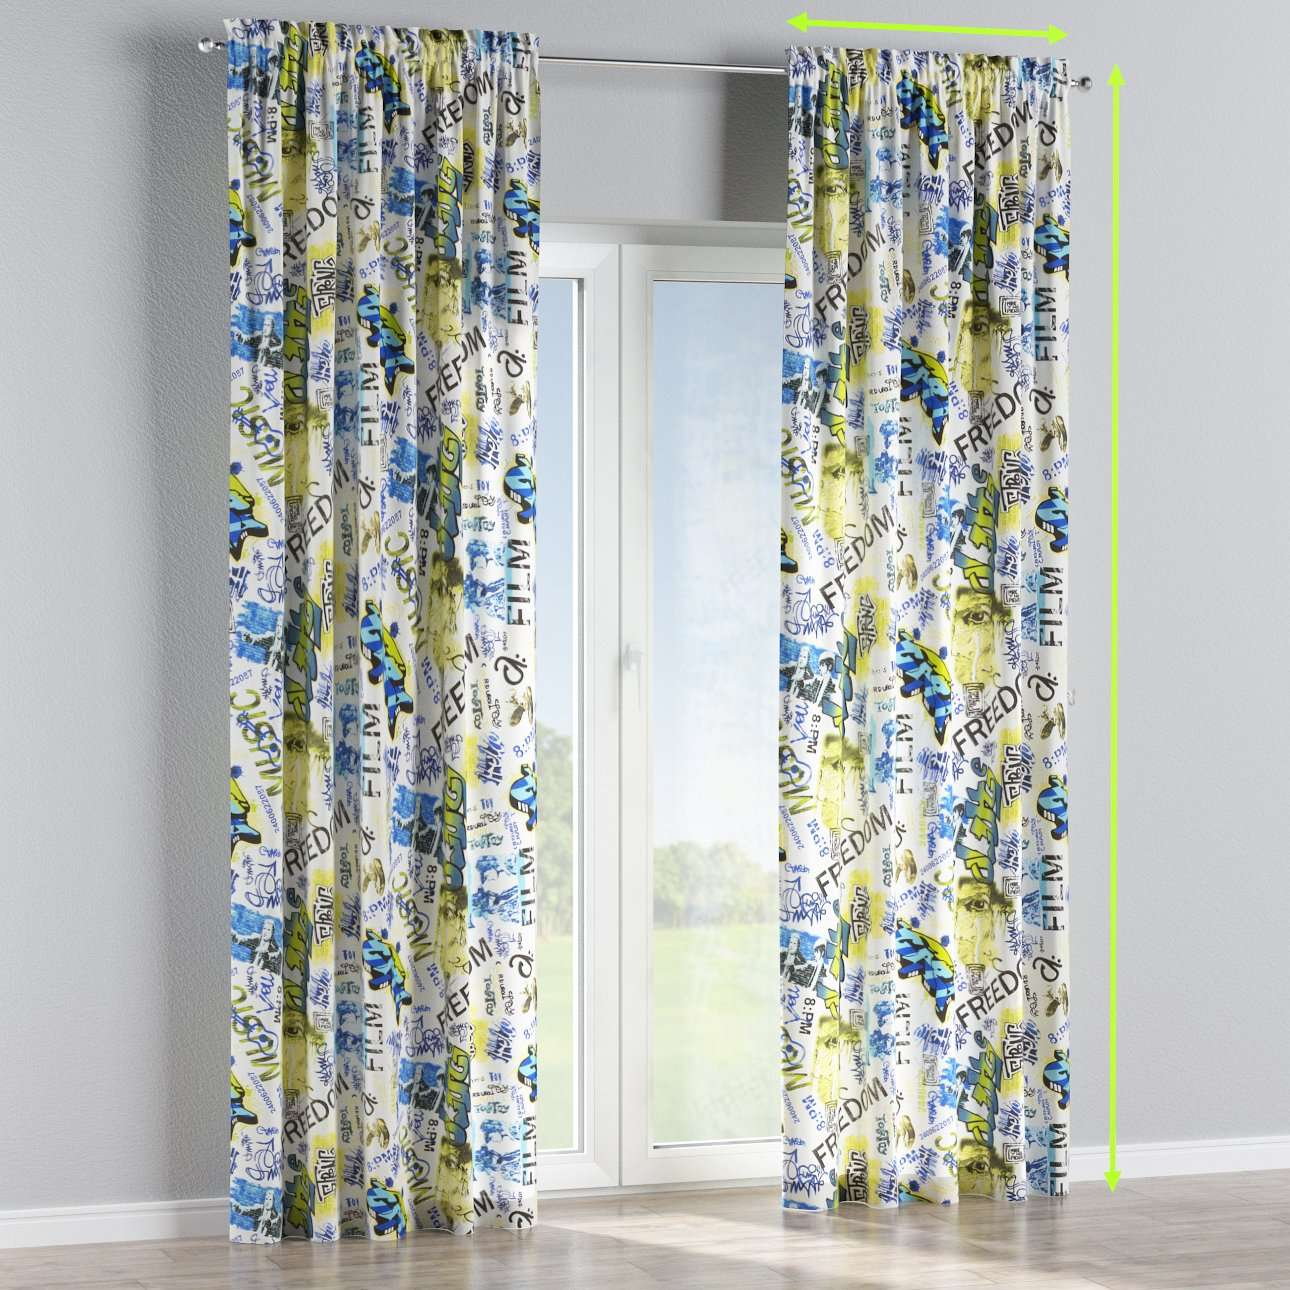 Slot and frill lined curtains in collection Freestyle, fabric: 135-08